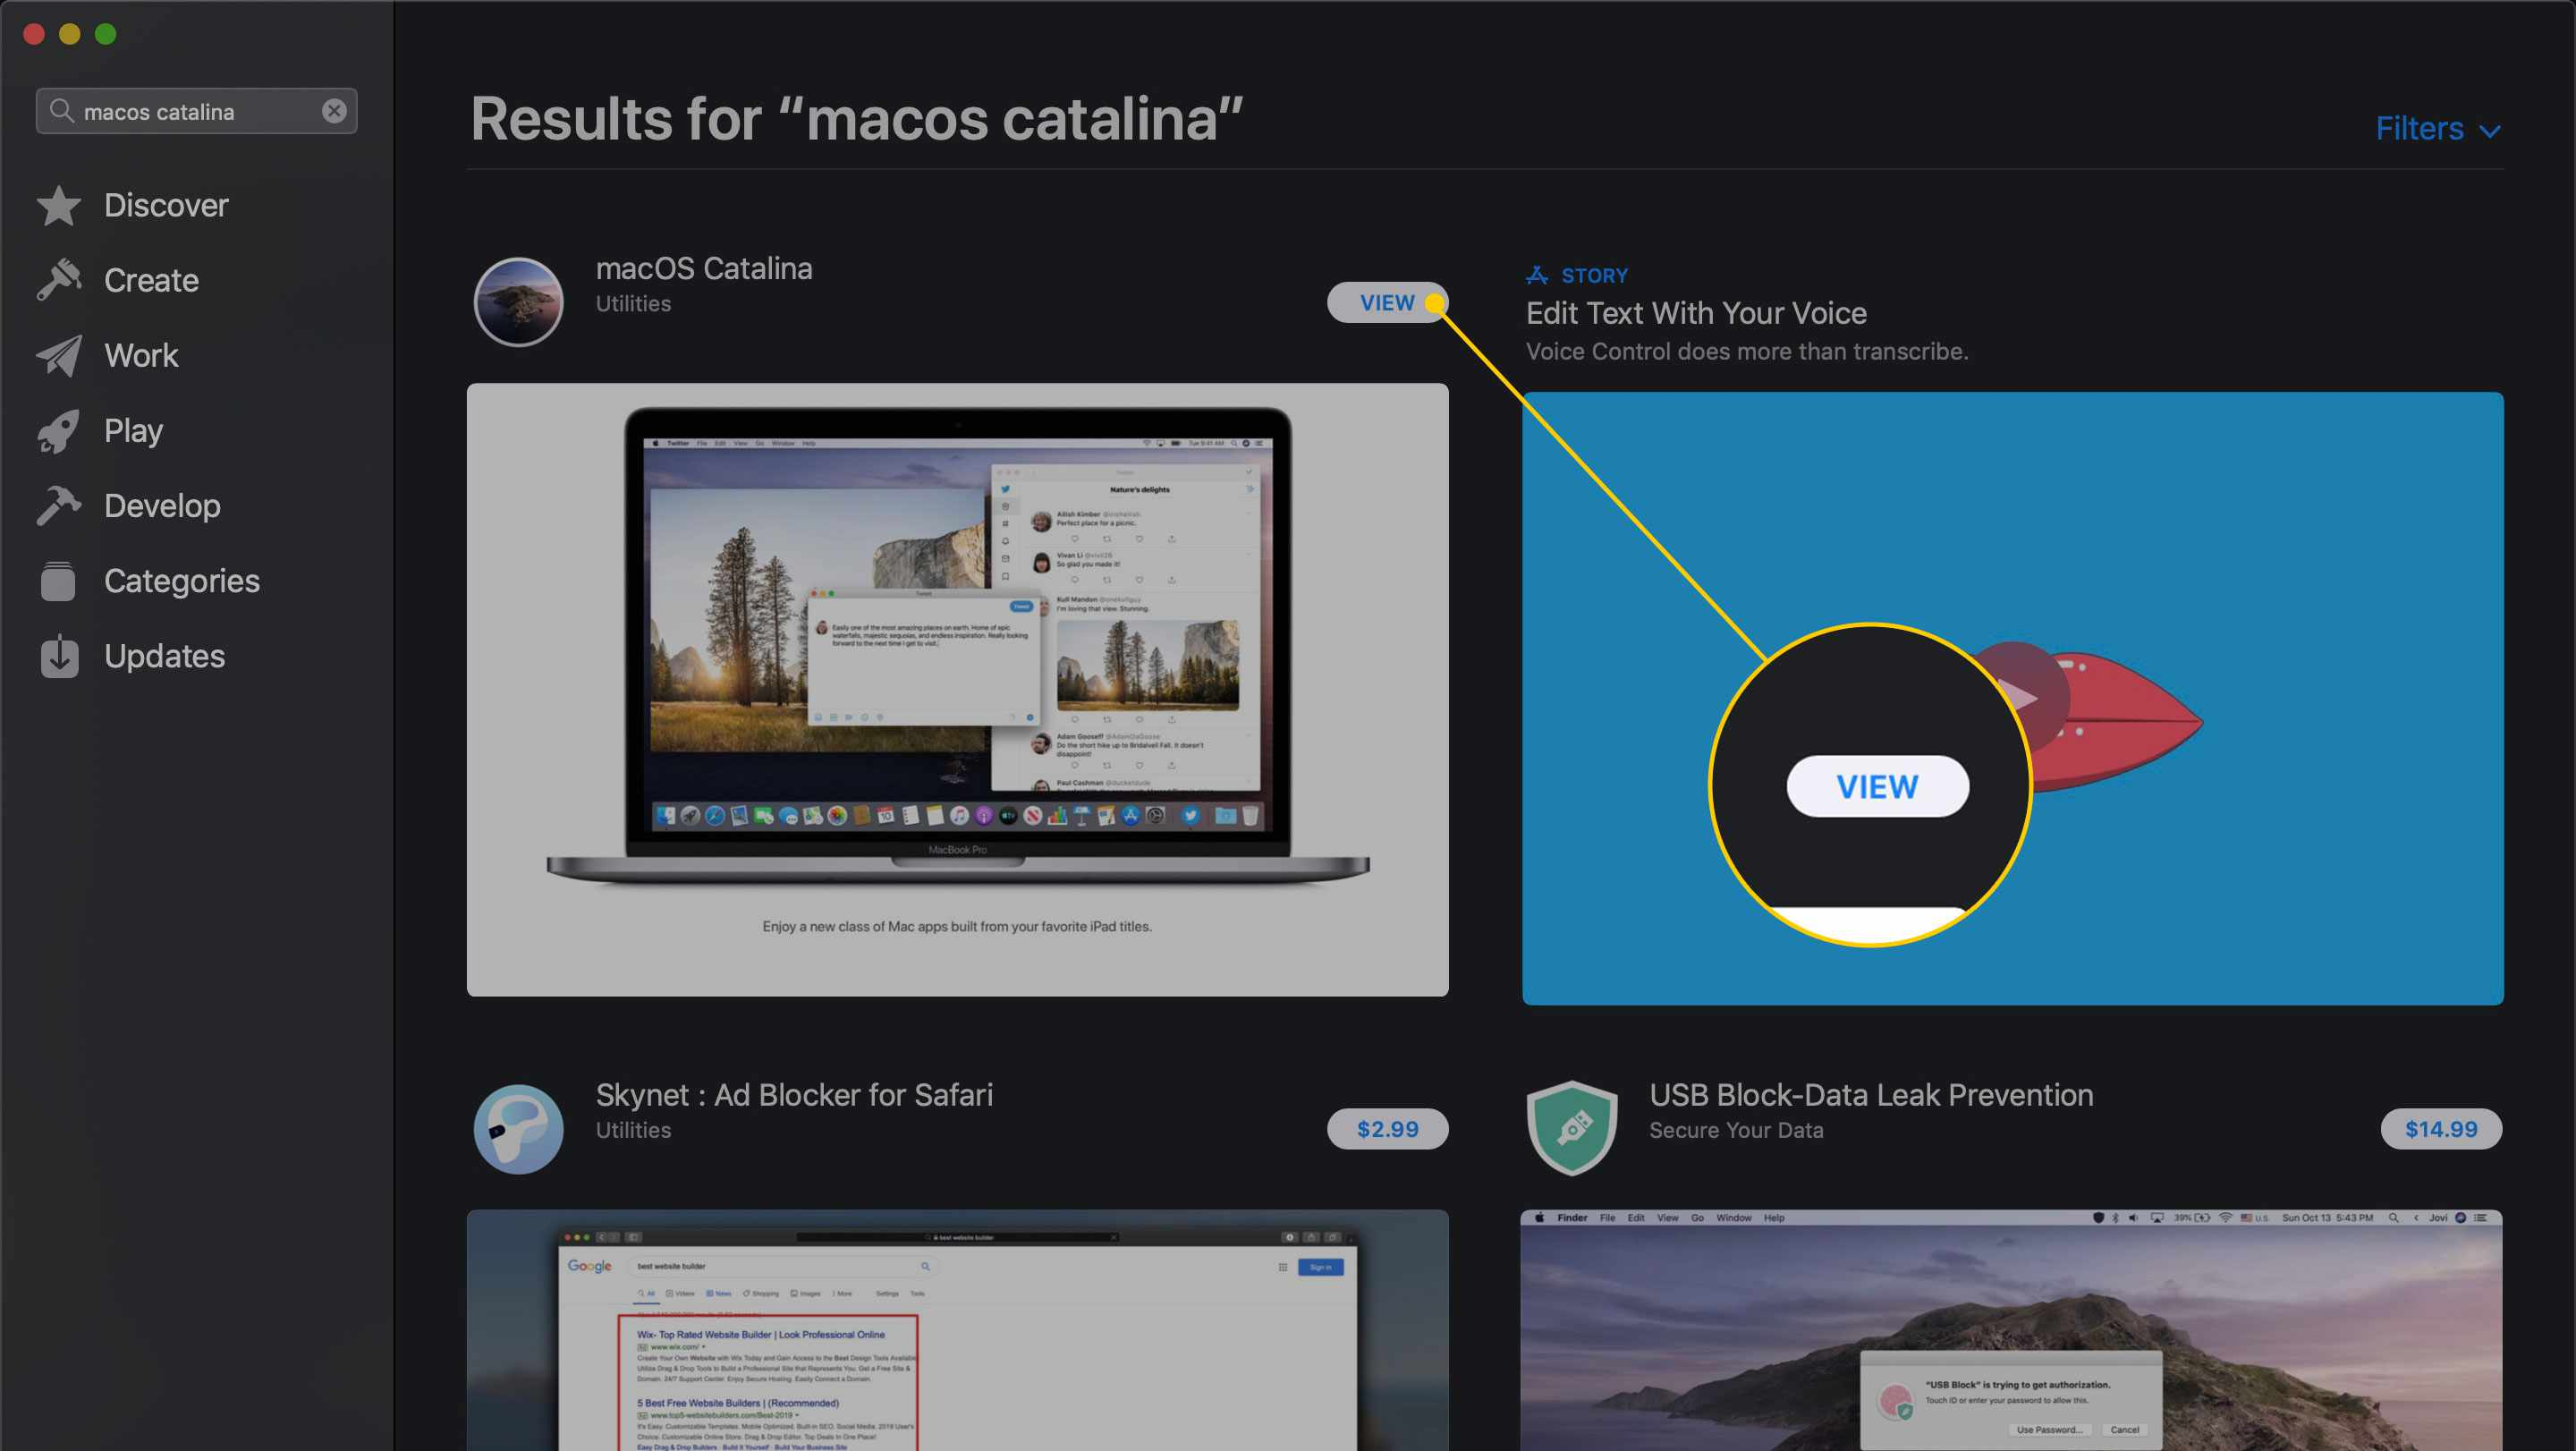 View button for macOS Catalina in the App Store